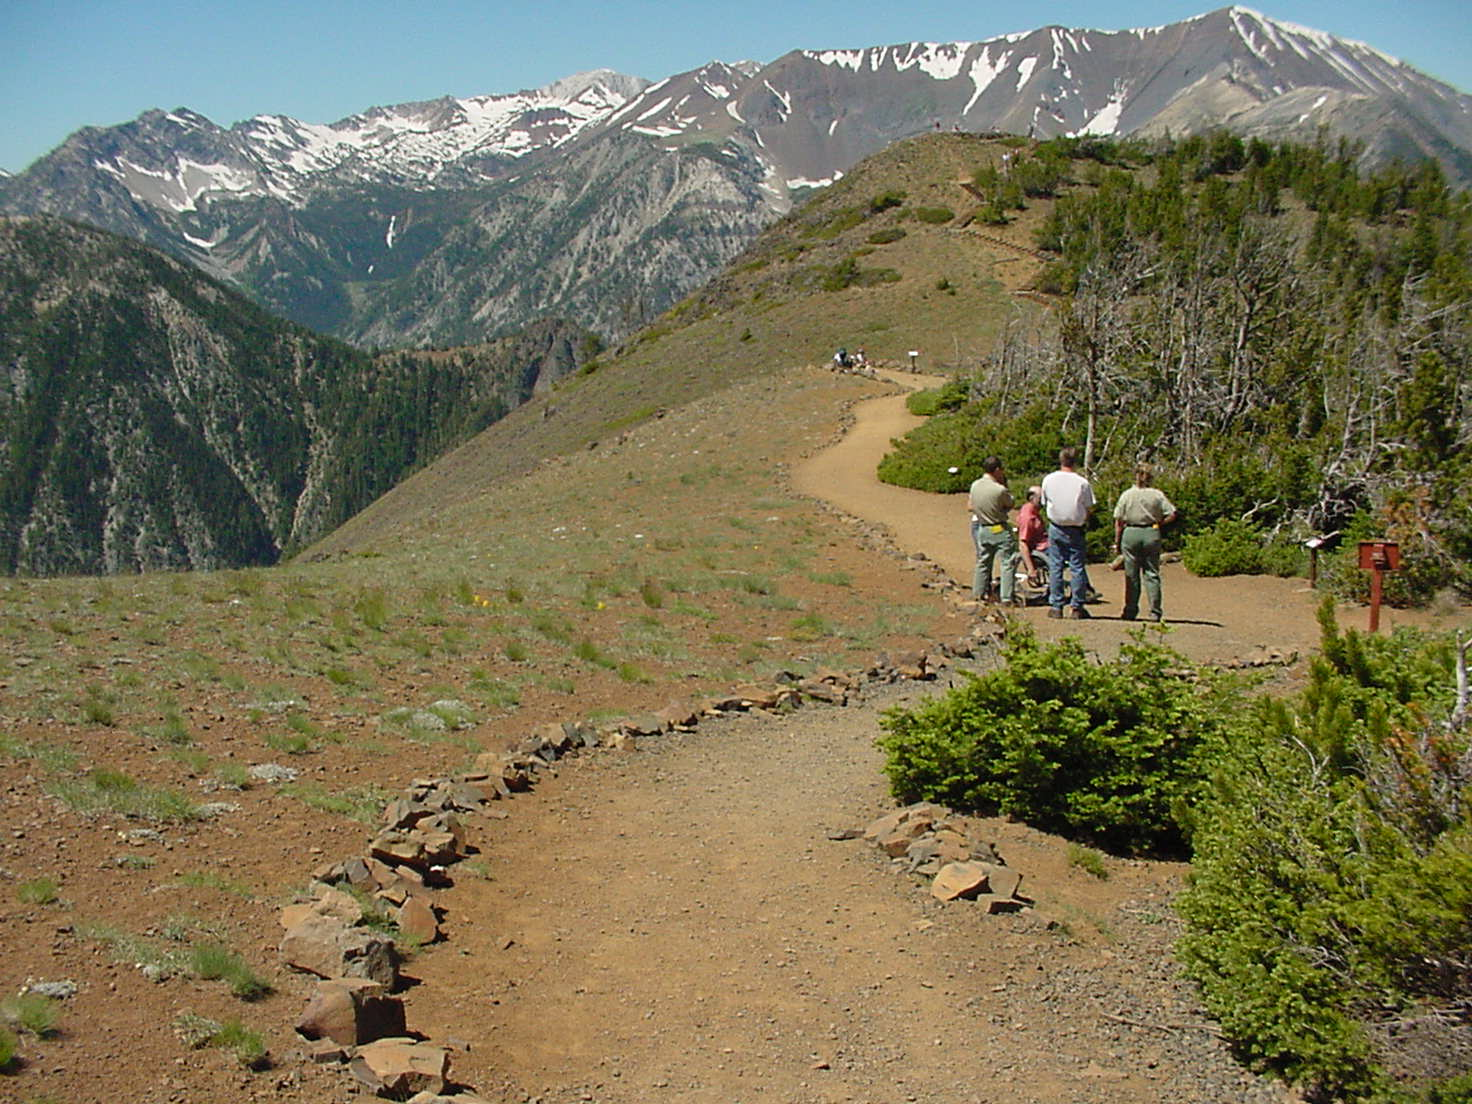 People walking down a sandy trail with mountains in background